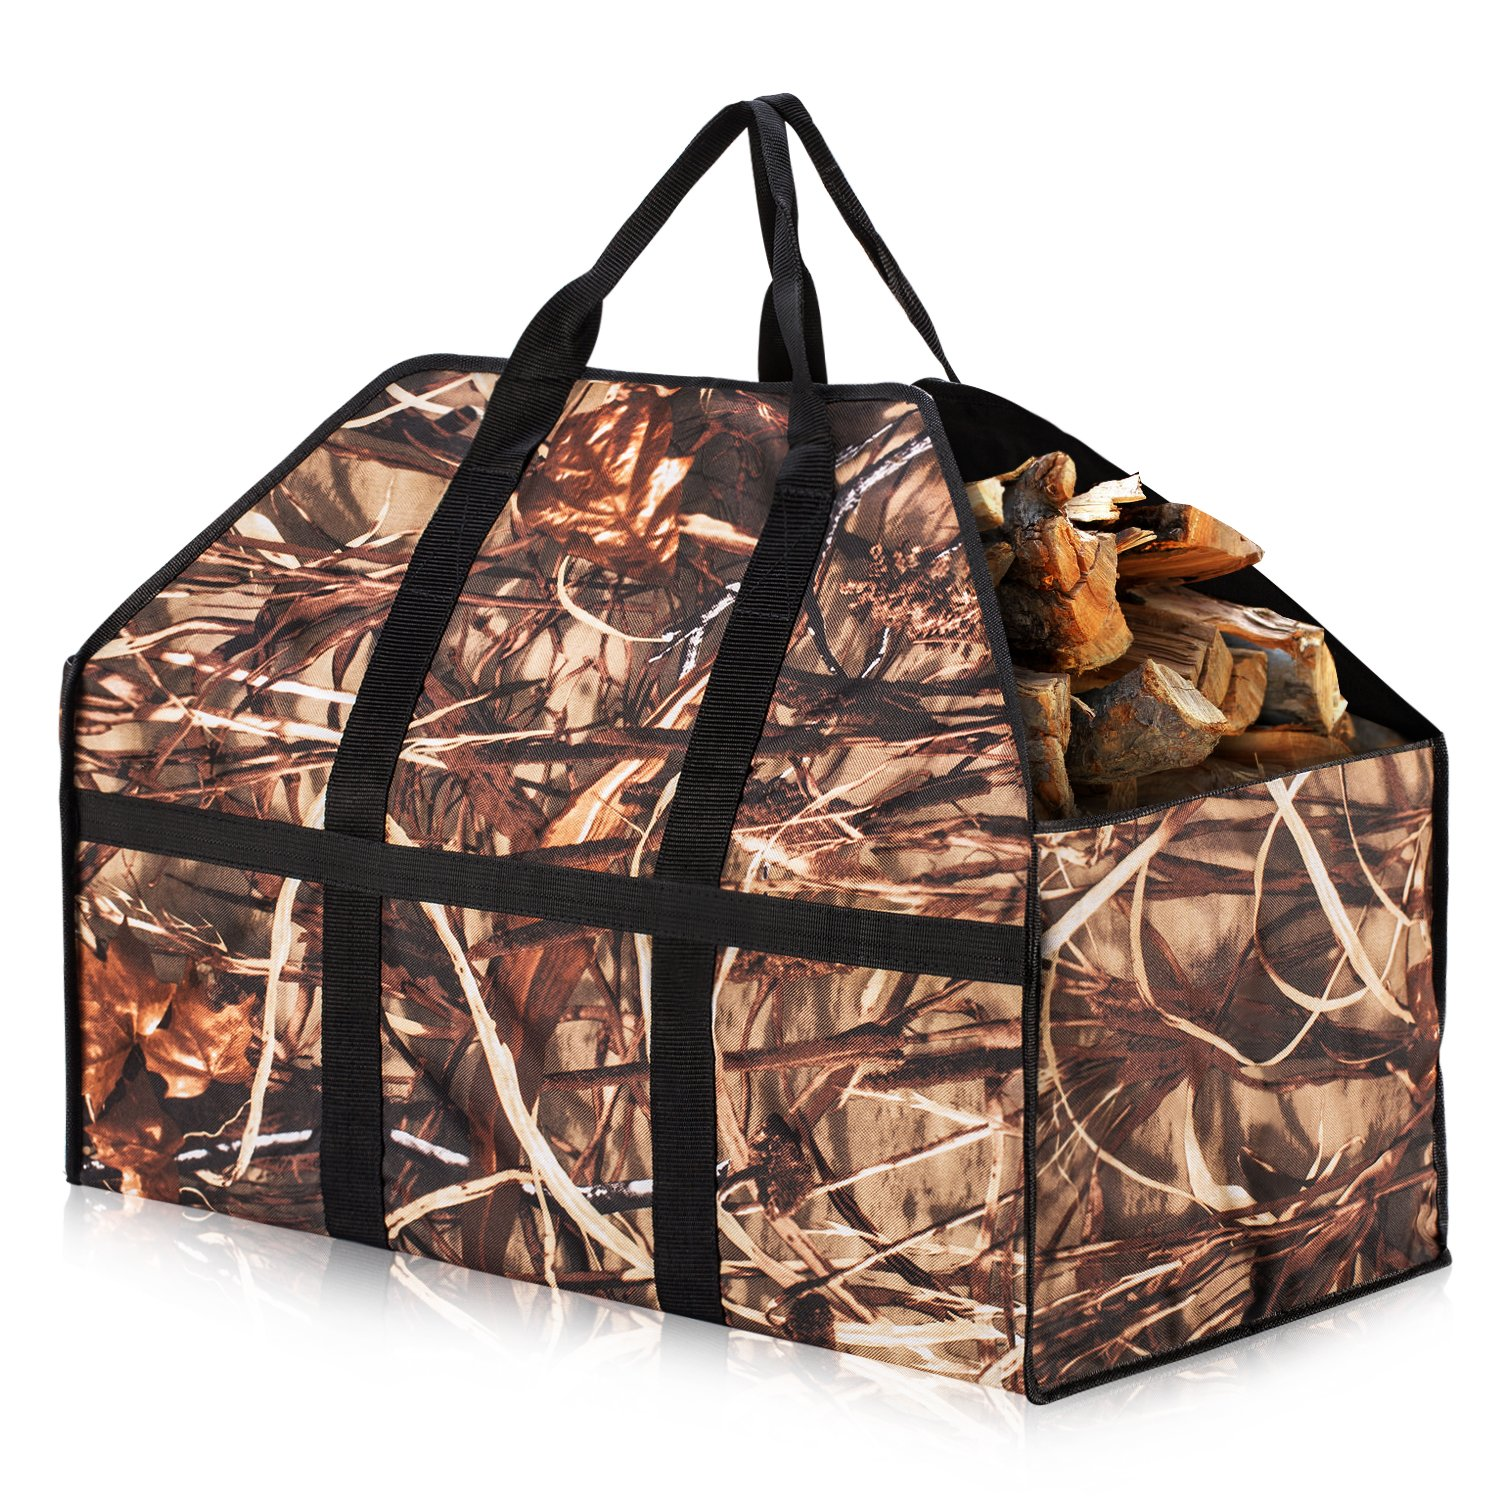 Herron Log Carrier, Large Capacity- Extra Strong and Durable Fabric -Firewood Carrier Strong Handle &Avoid Wood Debris on the Floor Firewood Bag